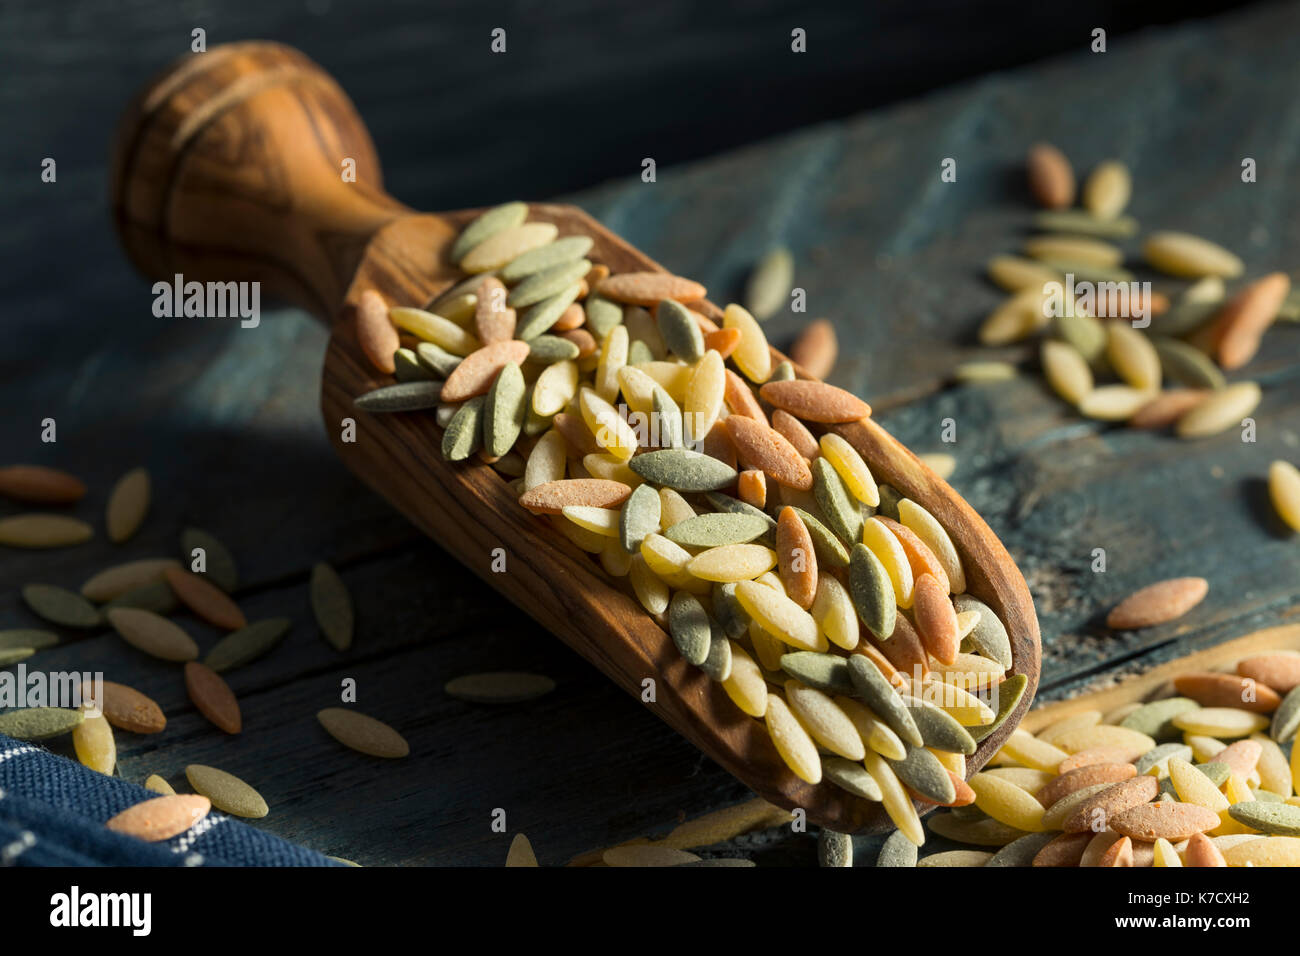 Dry Organic Tricolor Orzo Pasta in a Bowl - Stock Image